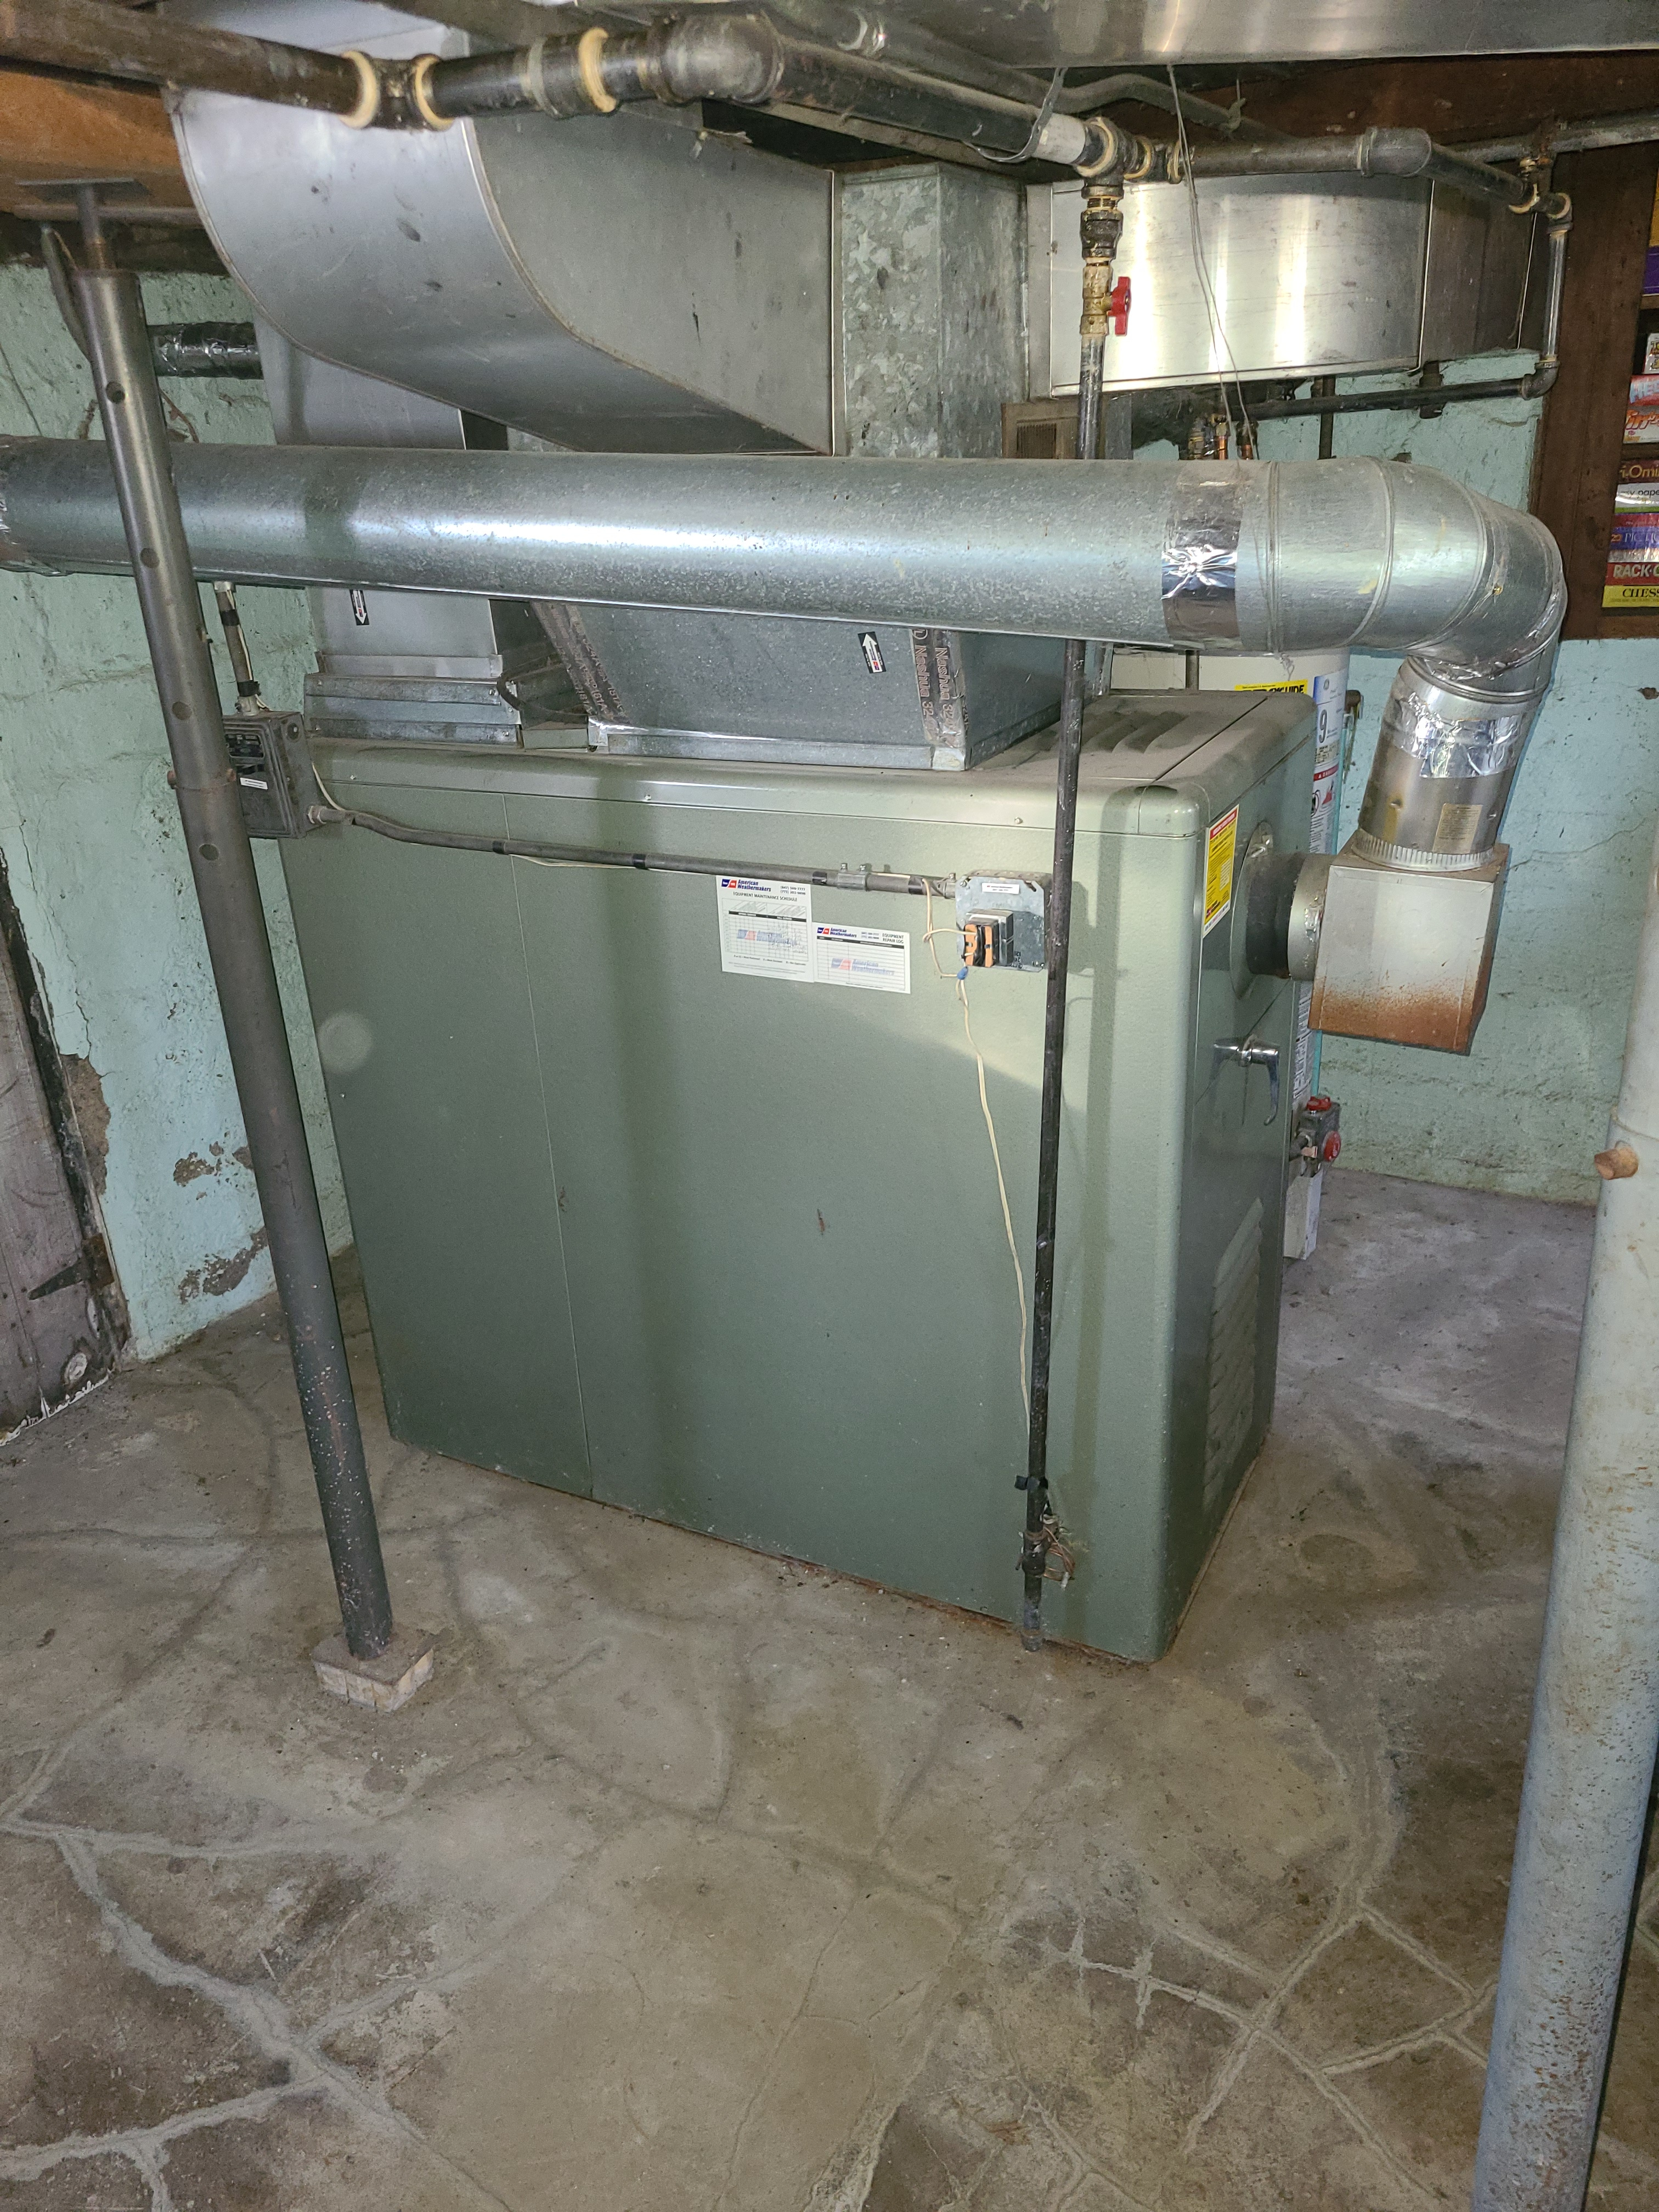 Make sure your furnace is ready for the winter.